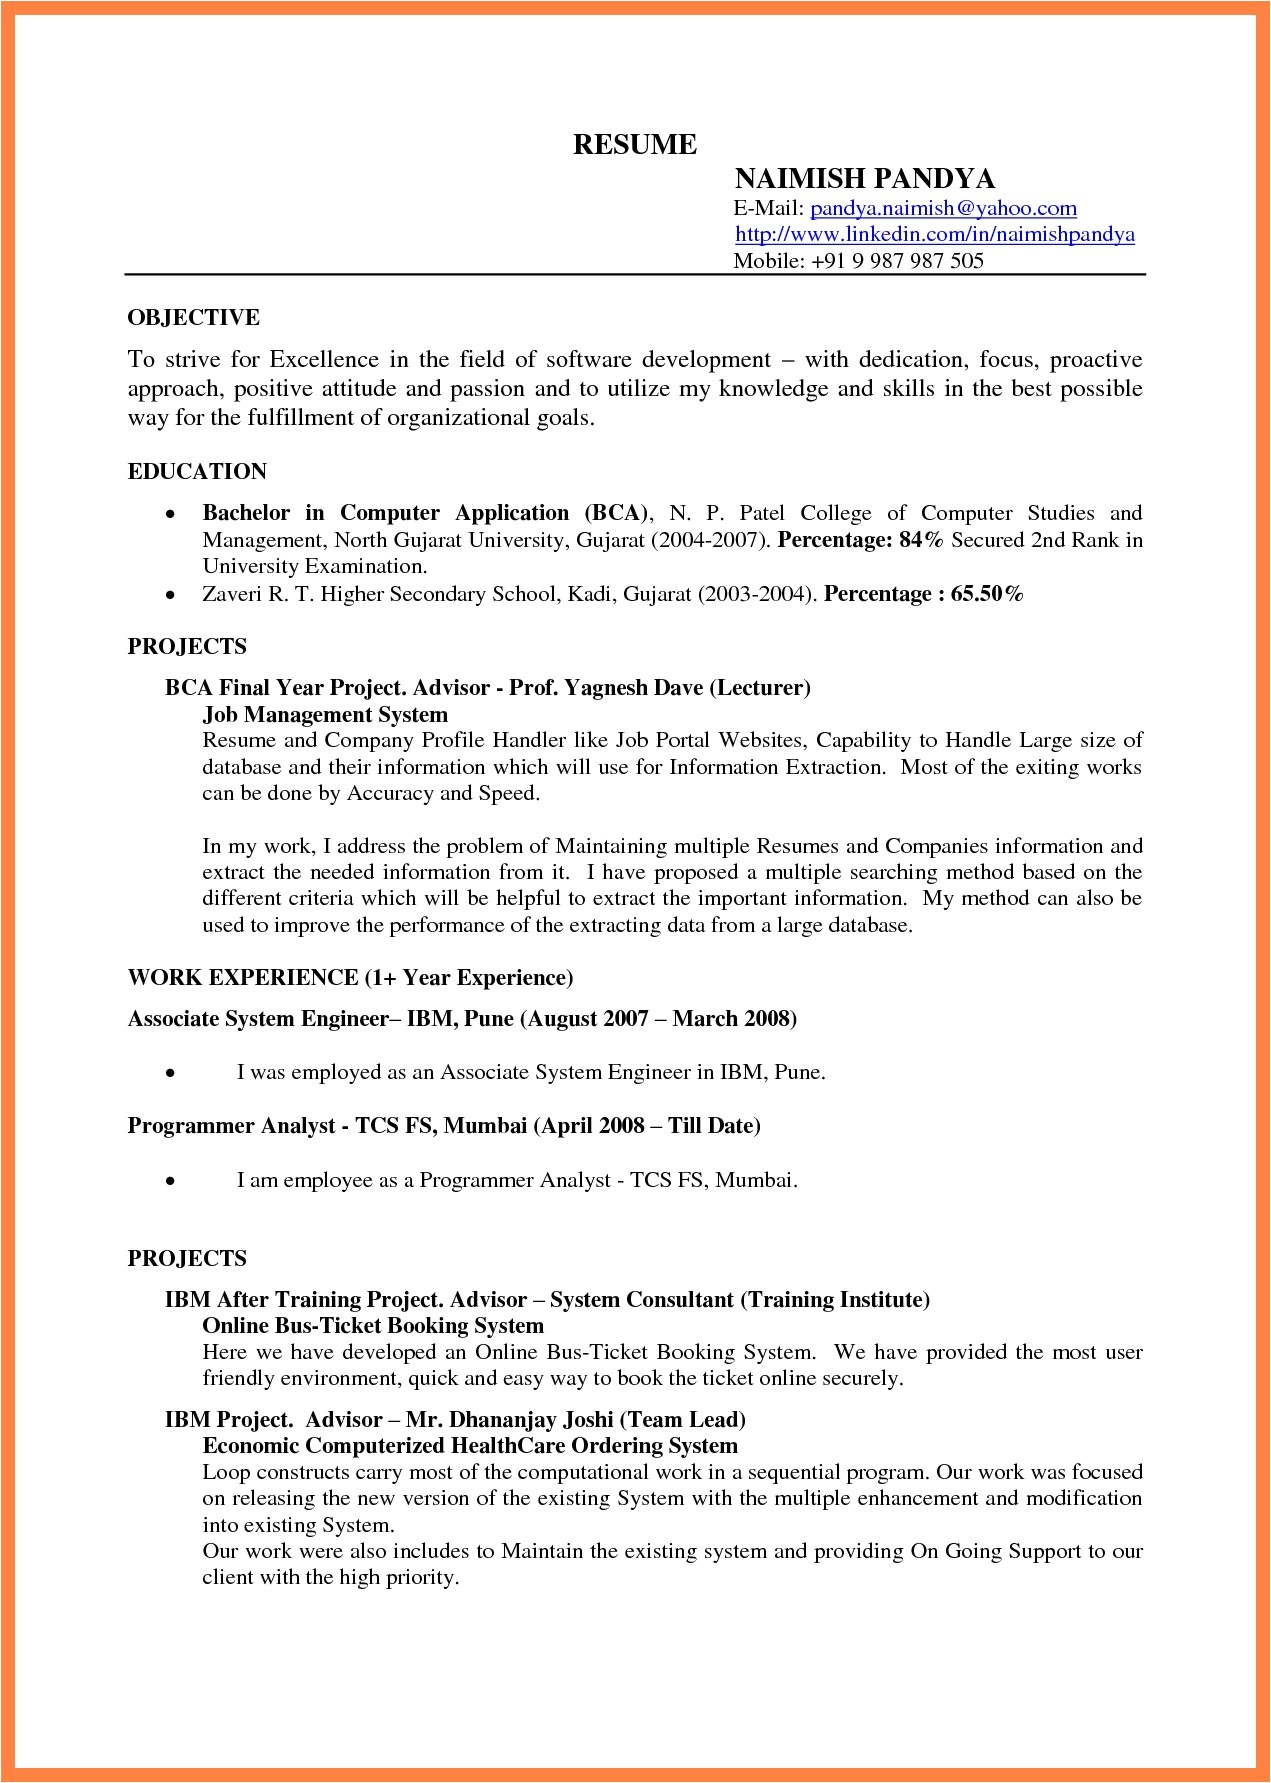 Resume Template Examples Free Google Drive Resume Templates Health Symptoms and Cure Com